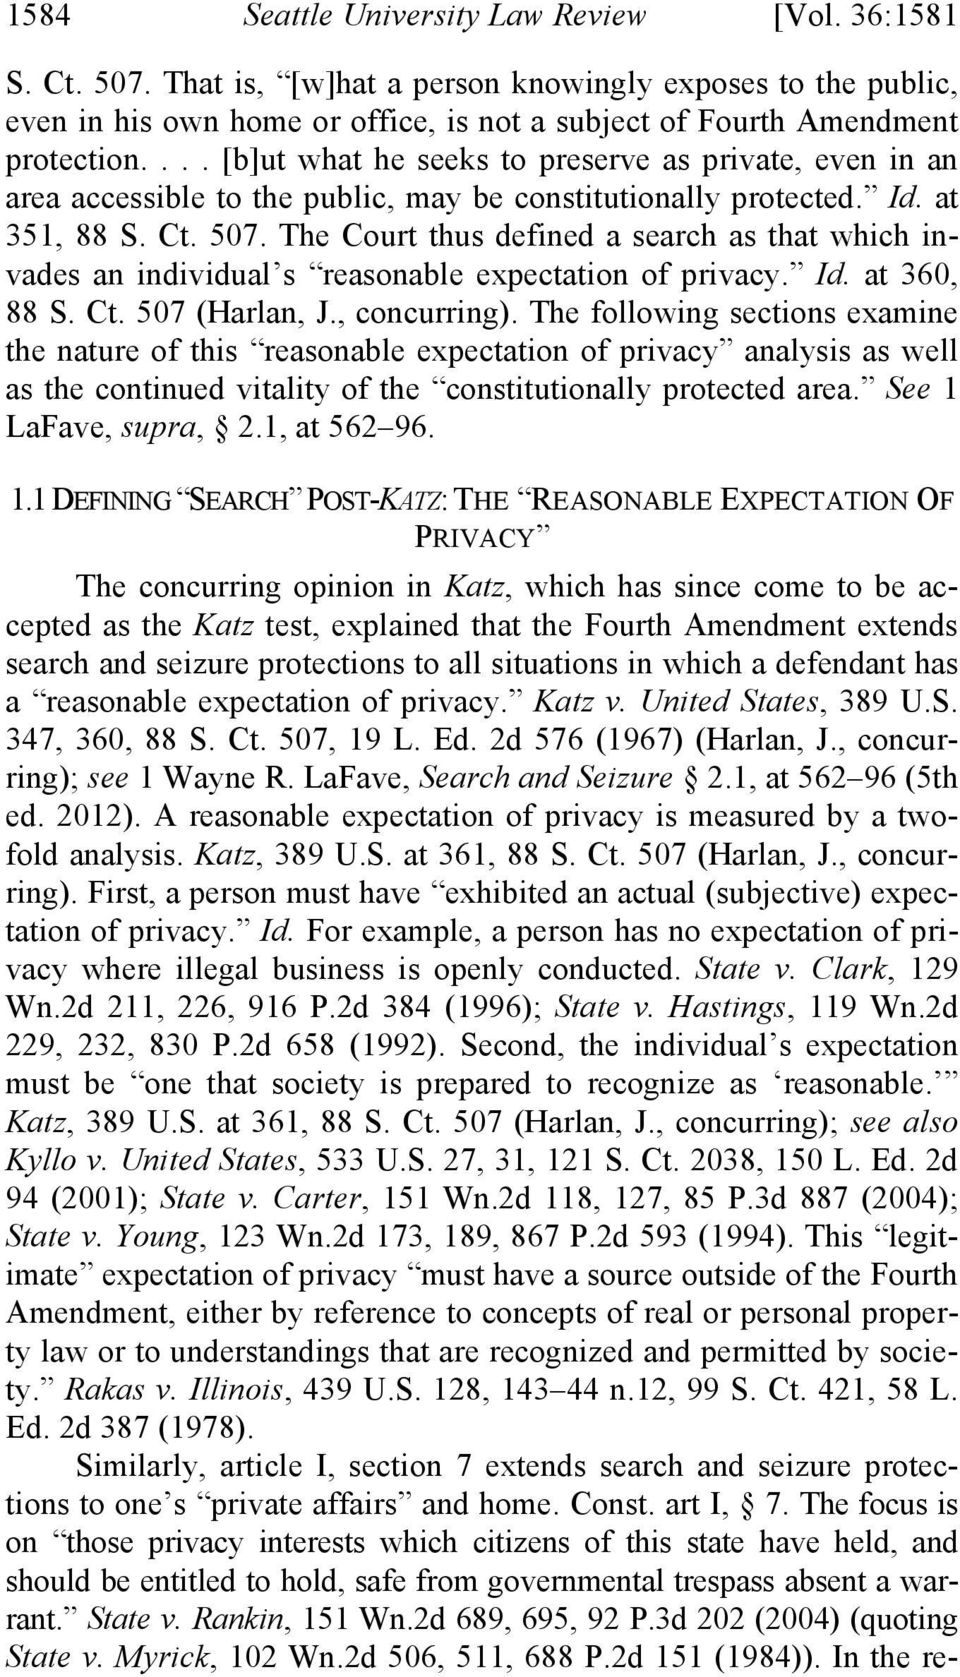 The Court thus defined a search as that which invades an individual s reasonable expectation of privacy. Id. at 360, 88 S. Ct. 507 (Harlan, J., concurring).